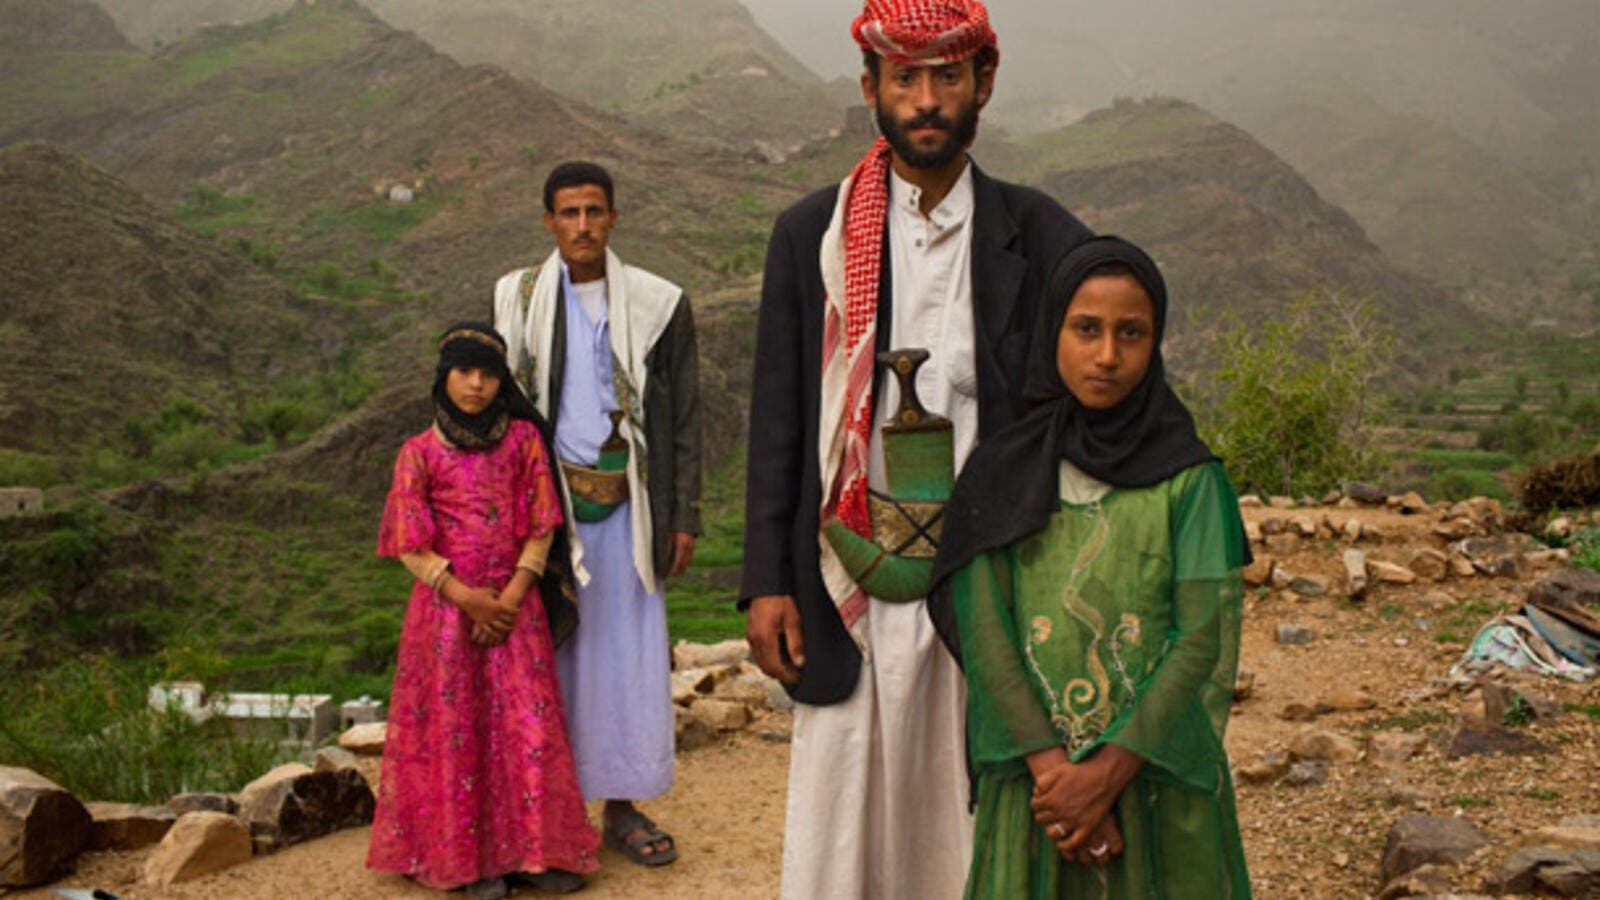 Yemeni officials recently thwarted the wedding of a 12-year-old girl. (Image for illustrative purposes from Presstv.ir)